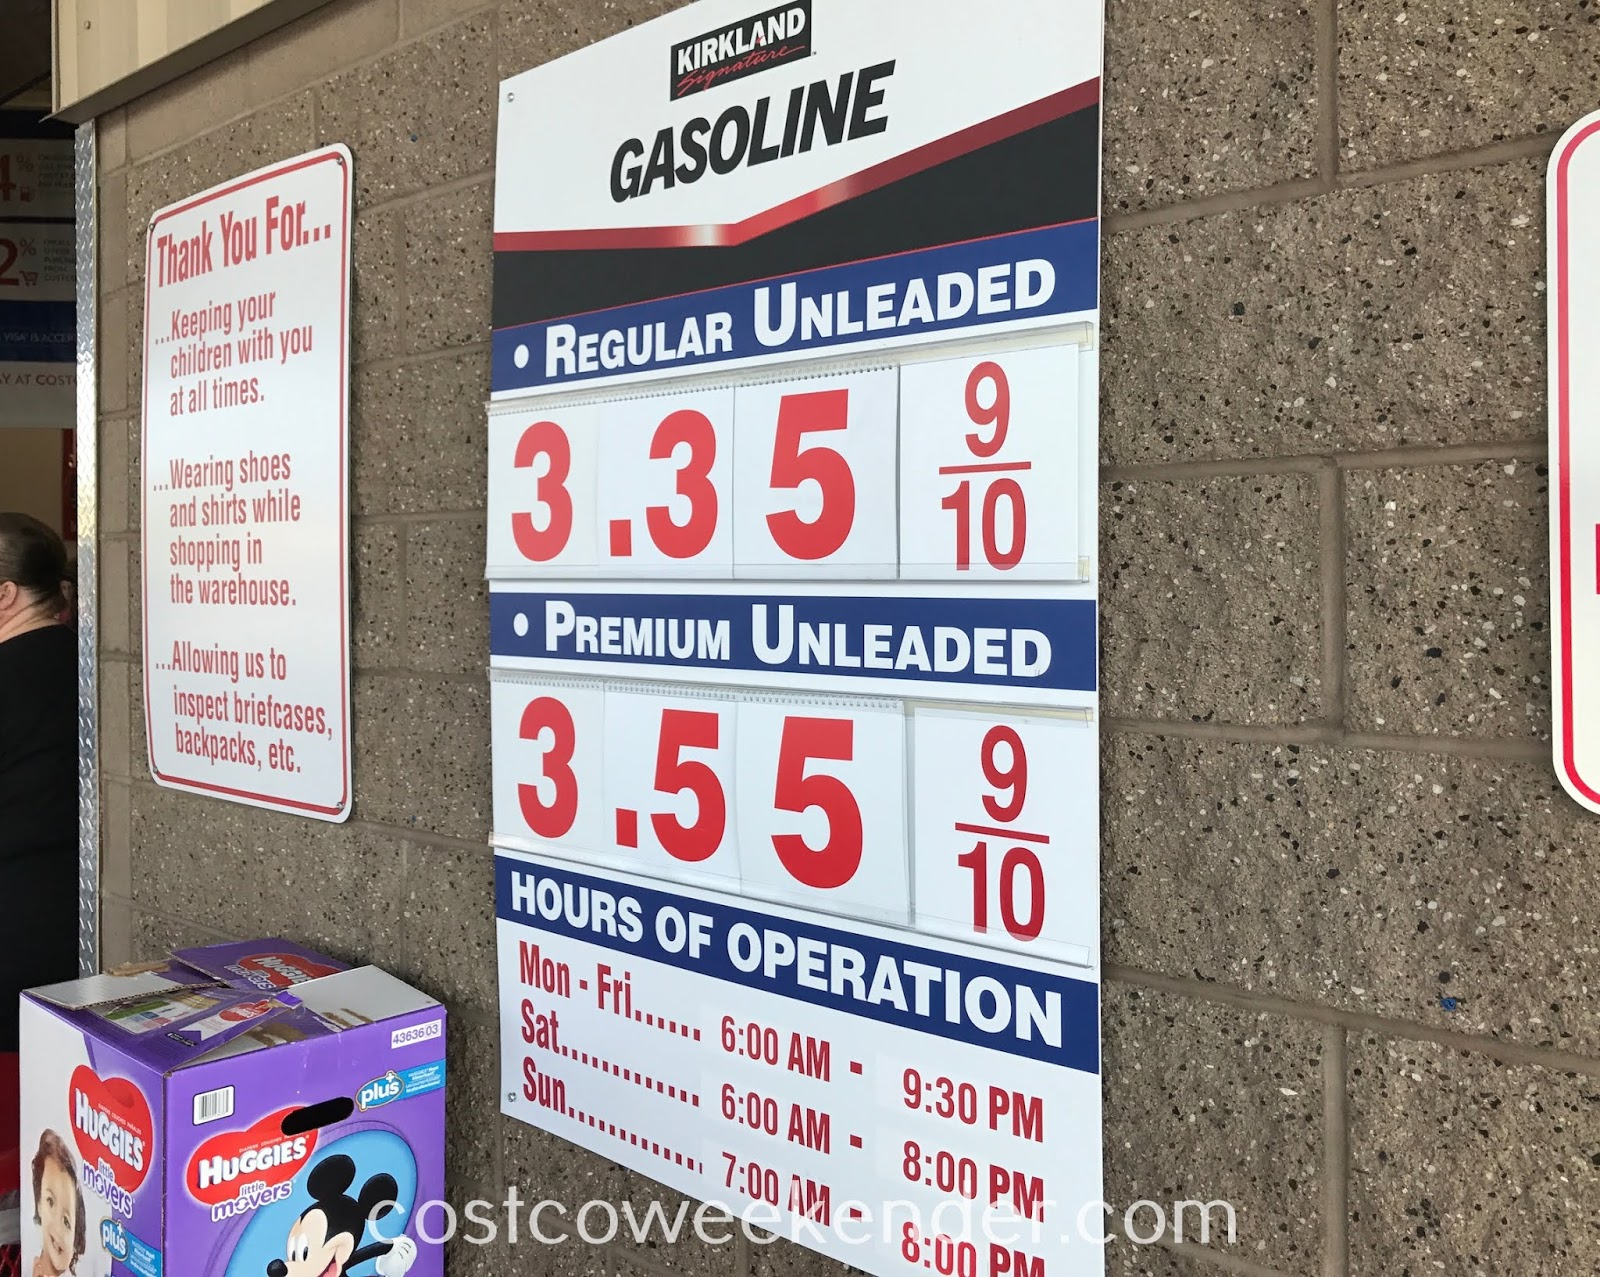 Costco gas for August 20, 2018 at Redwood City, CA